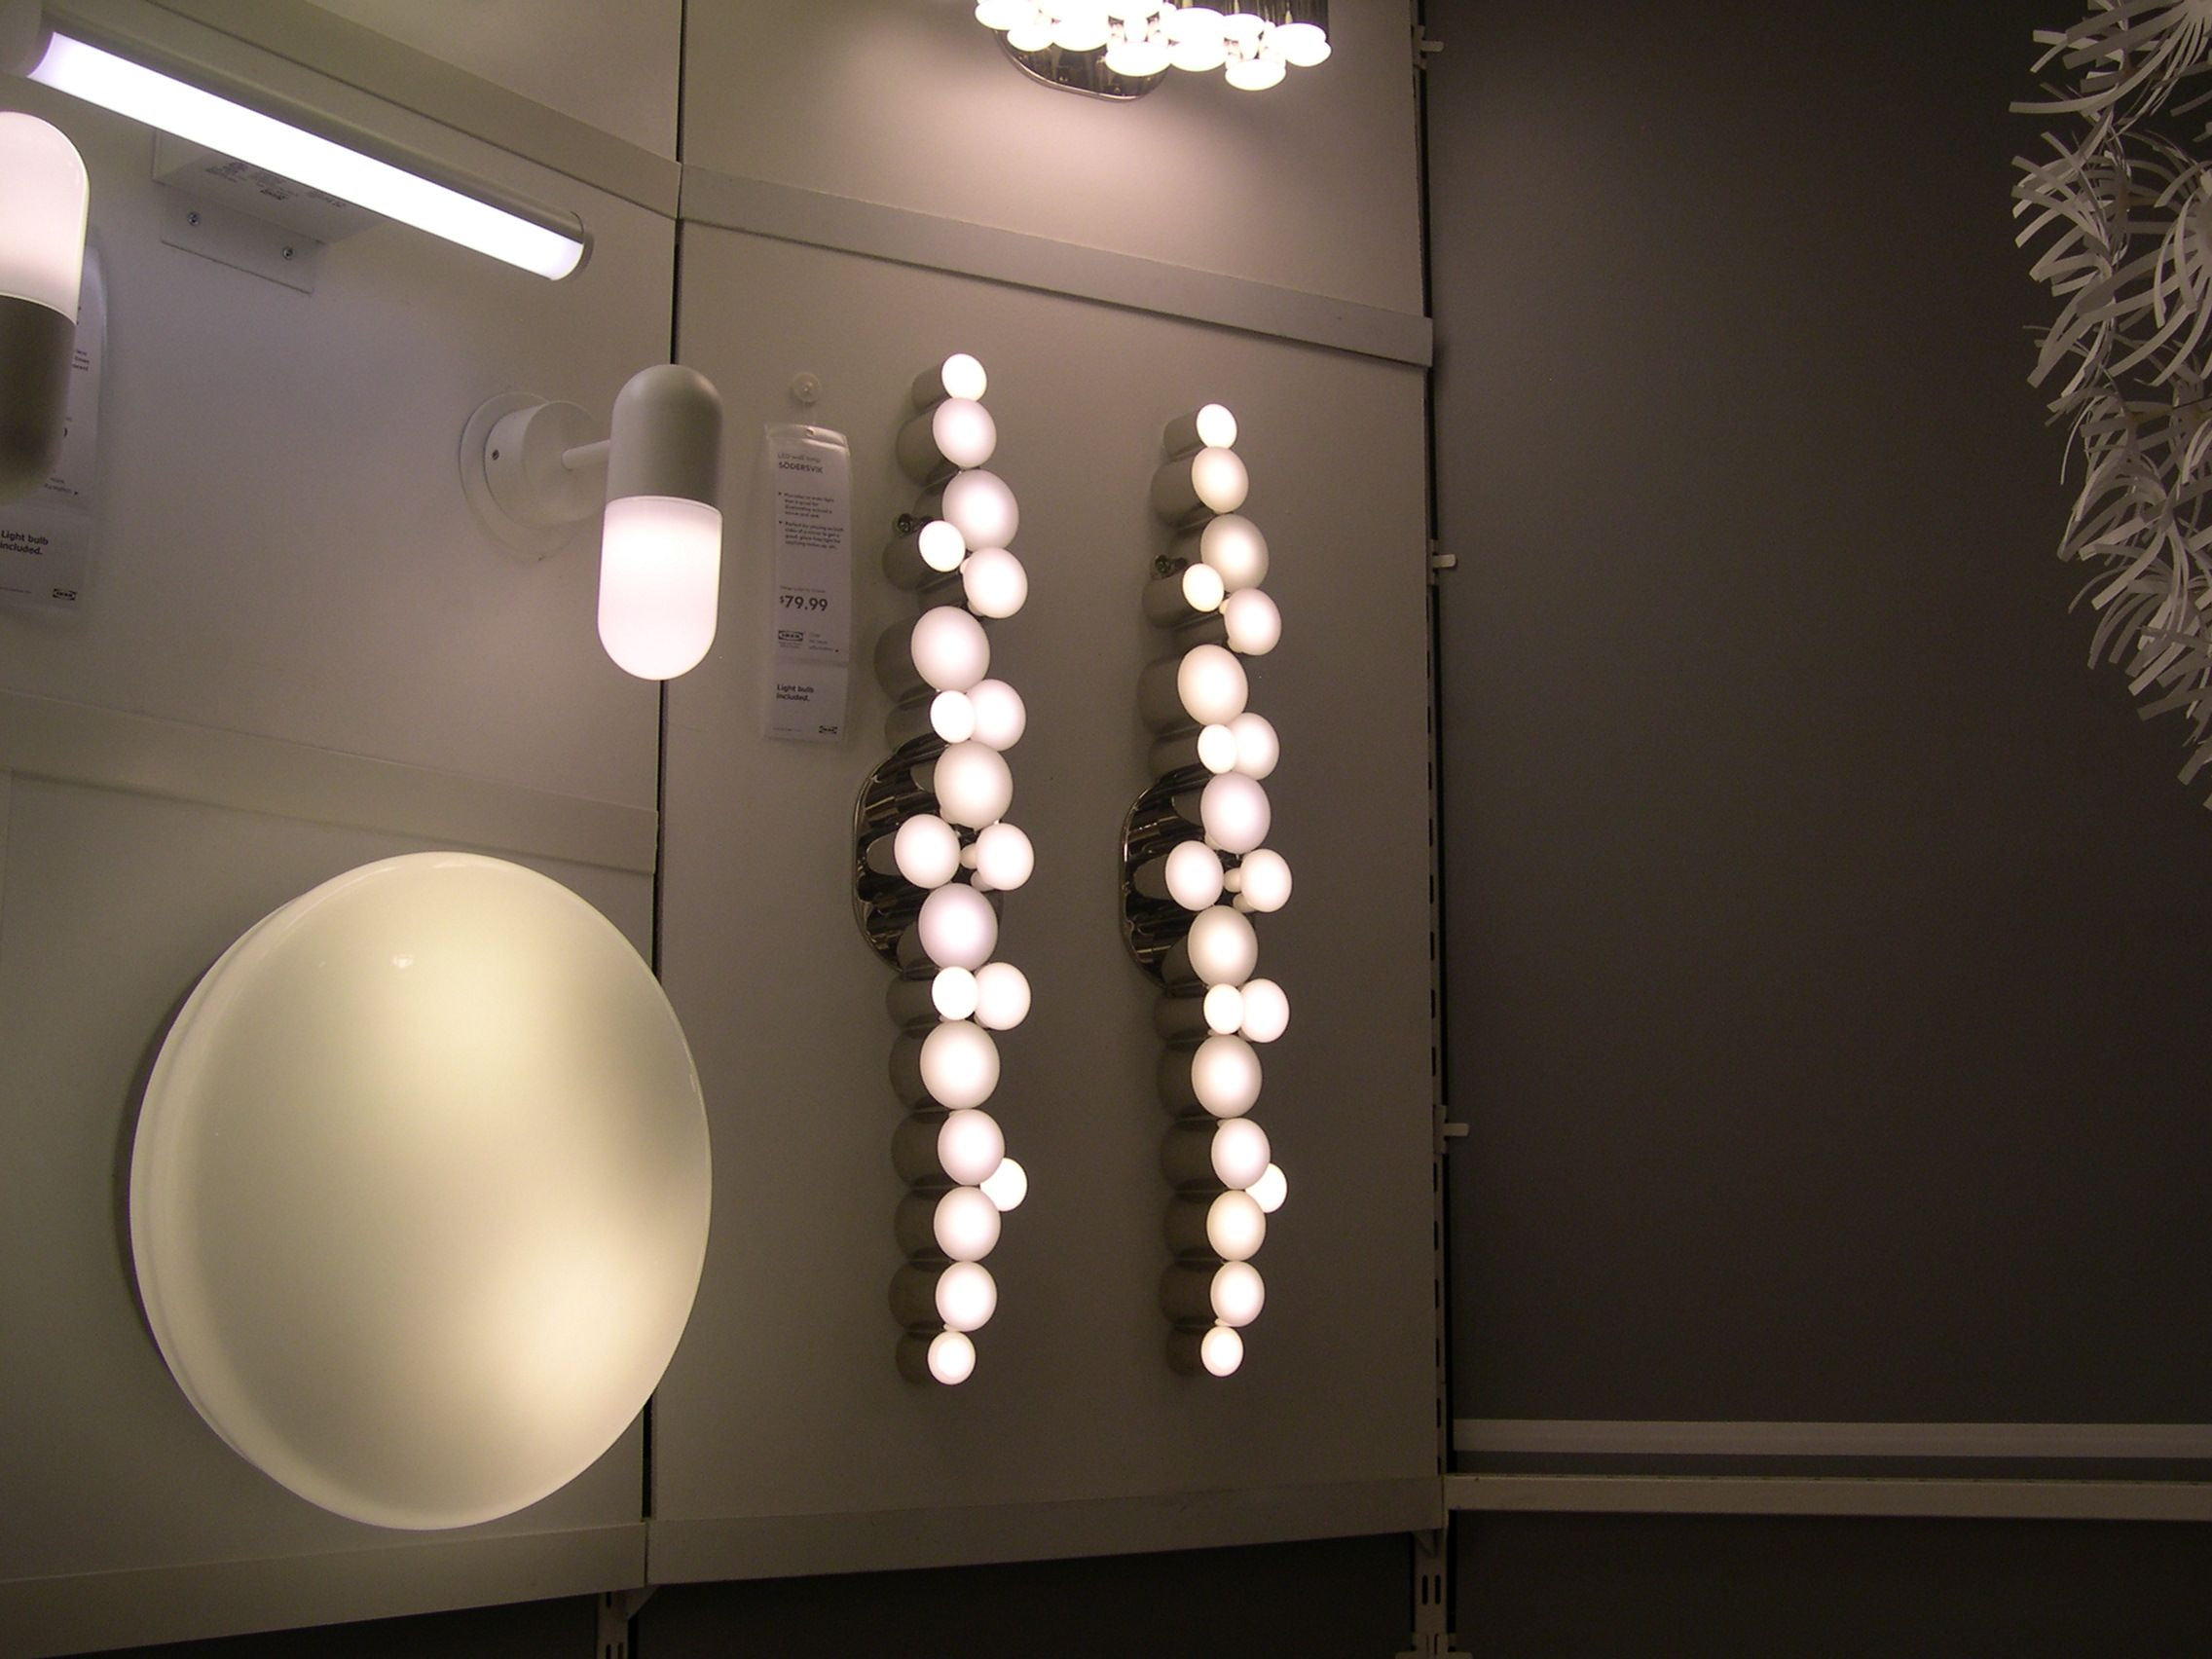 Love These Cer Bubble Wall Lights At Ikea Not Sure Where We D Use Them Bathrooms